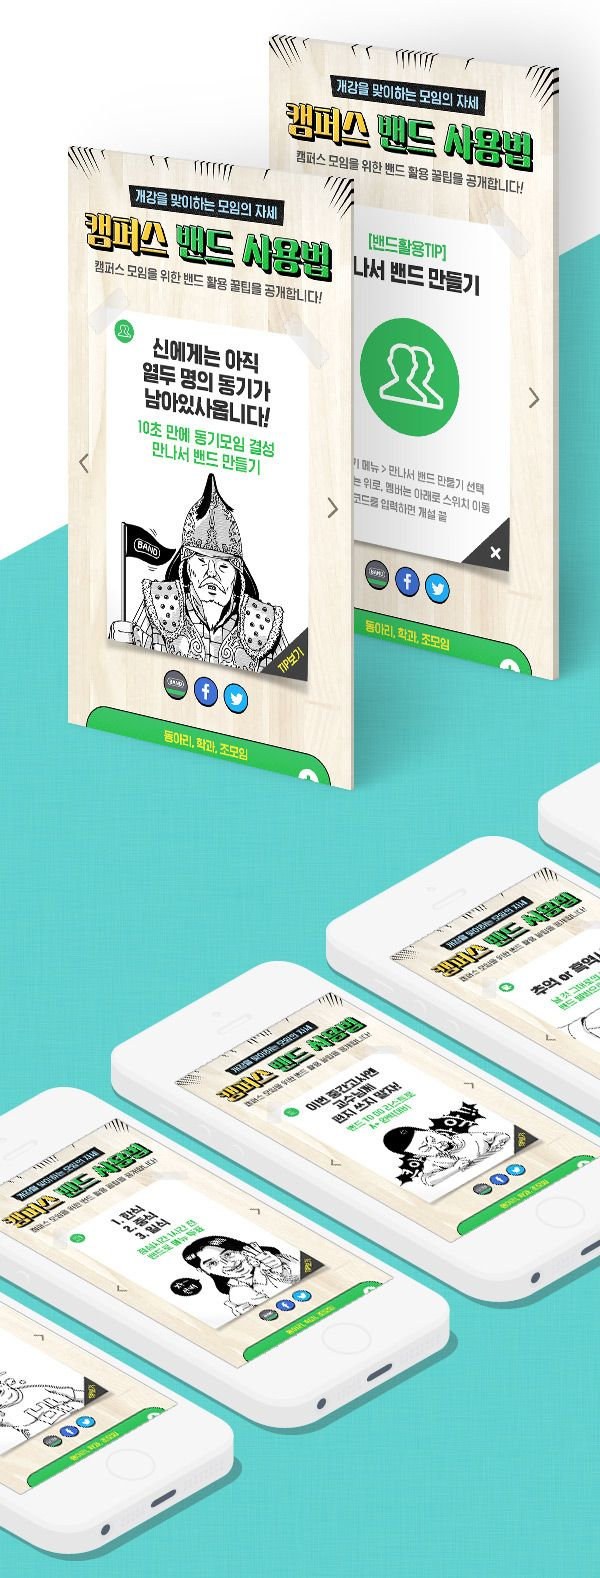 Band Apps, back-to-school campaign college